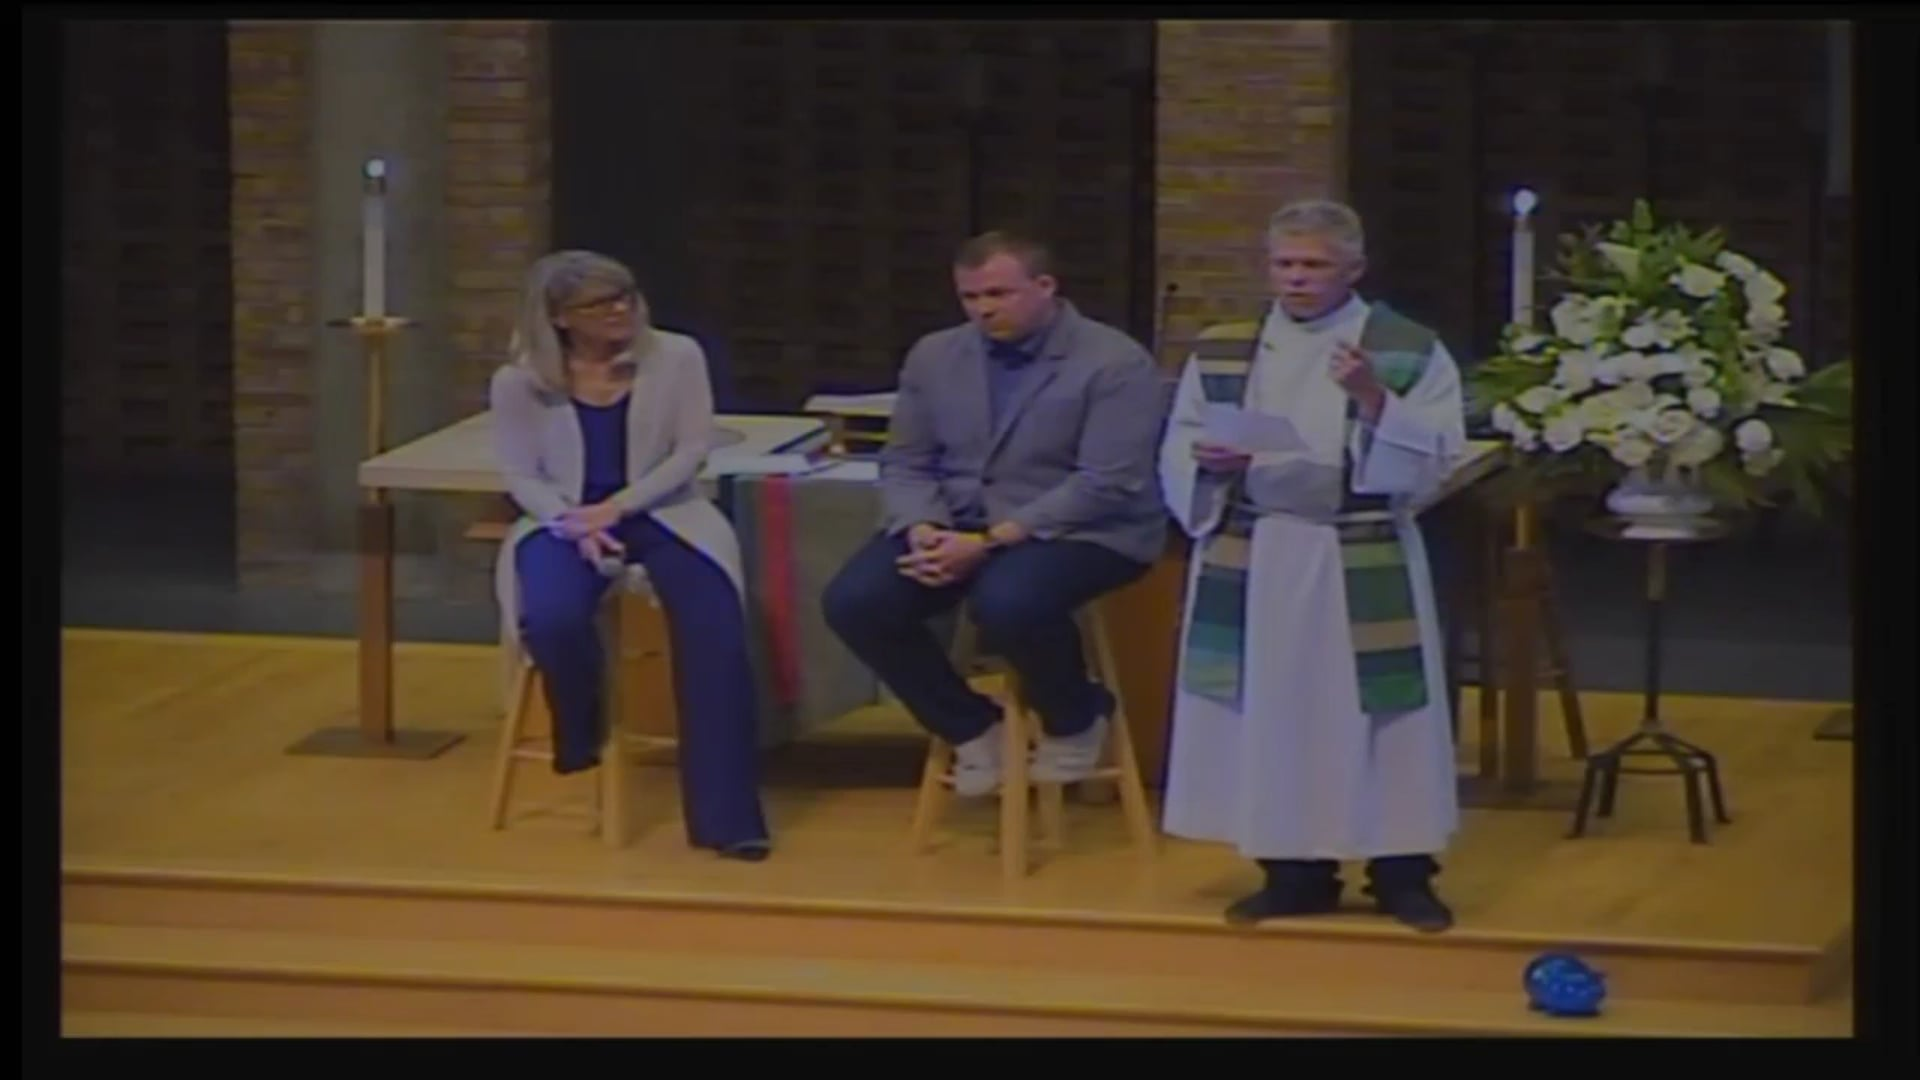 """Pastor Jason Van Hunnik """"Our Callings at Work"""" Interview Sermon with Tracy Wiese and Tom Hegblom"""